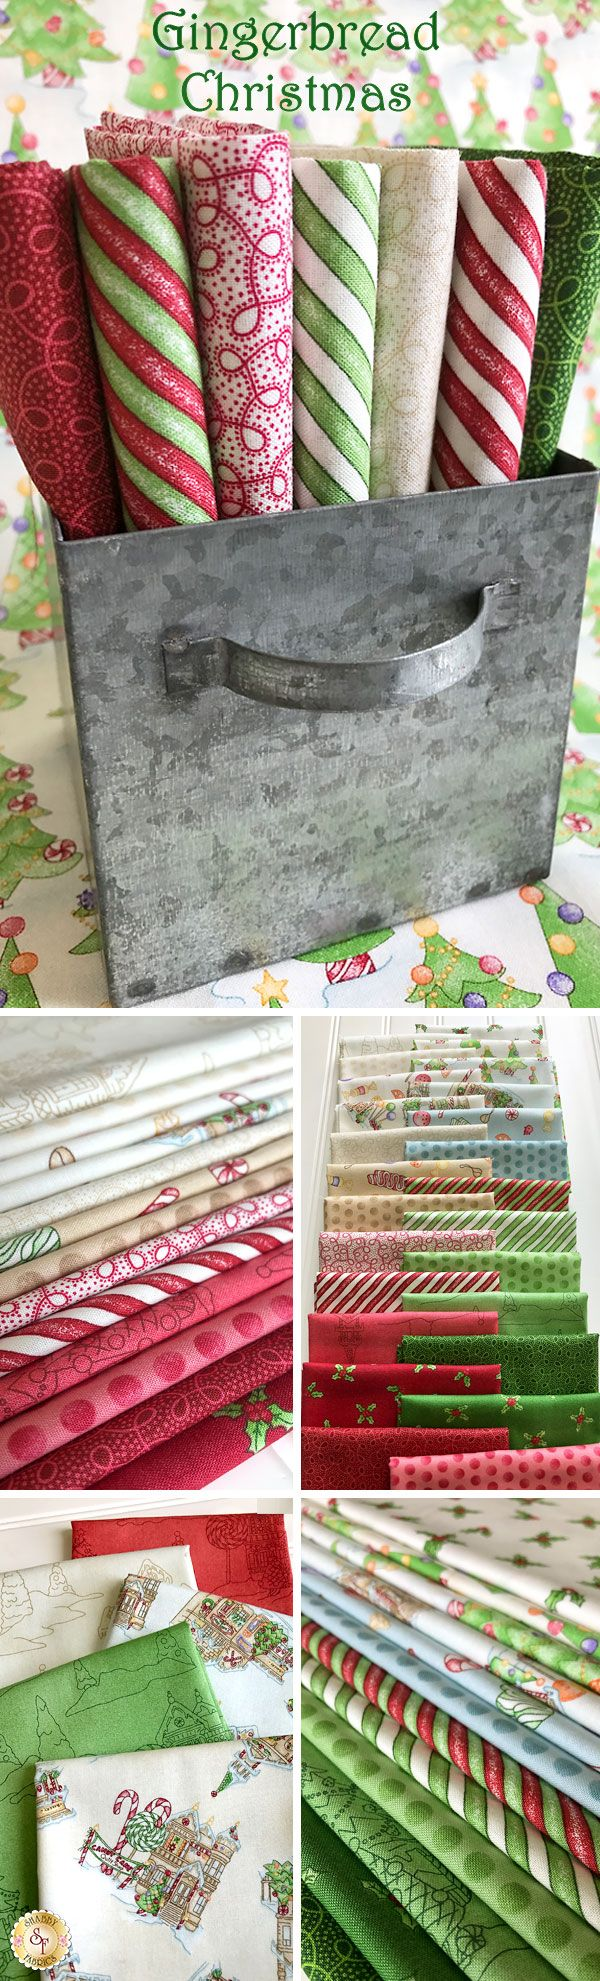 Gingerbread Christmas by Meg Hawkey for Maywood Studio is a holiday fabric collection available at Shabby Fabrics!